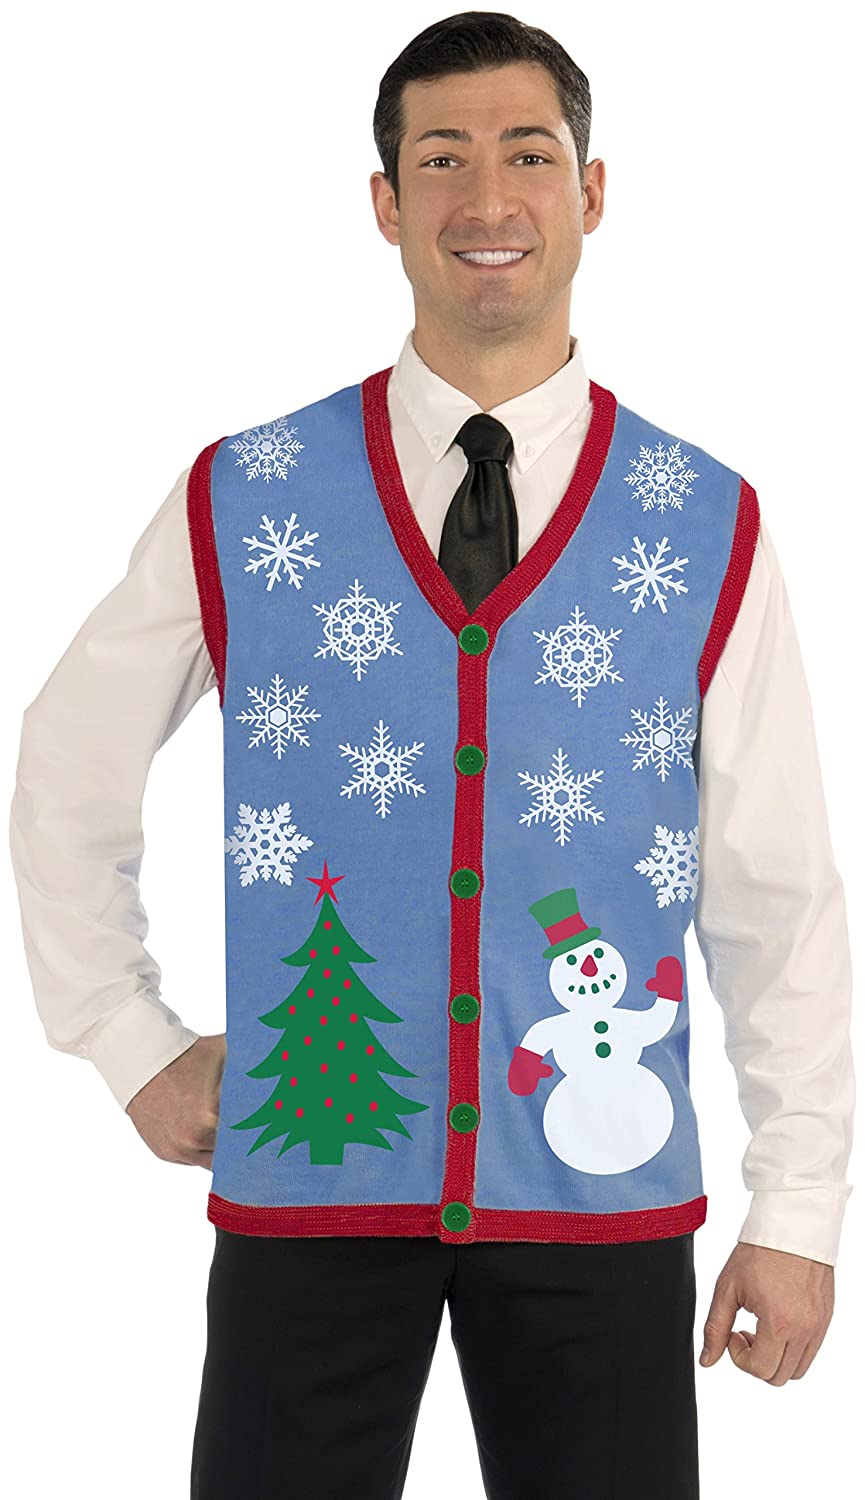 Amazon.com: Forum Novelties Men's Plus Size Snowflake Christmas ...